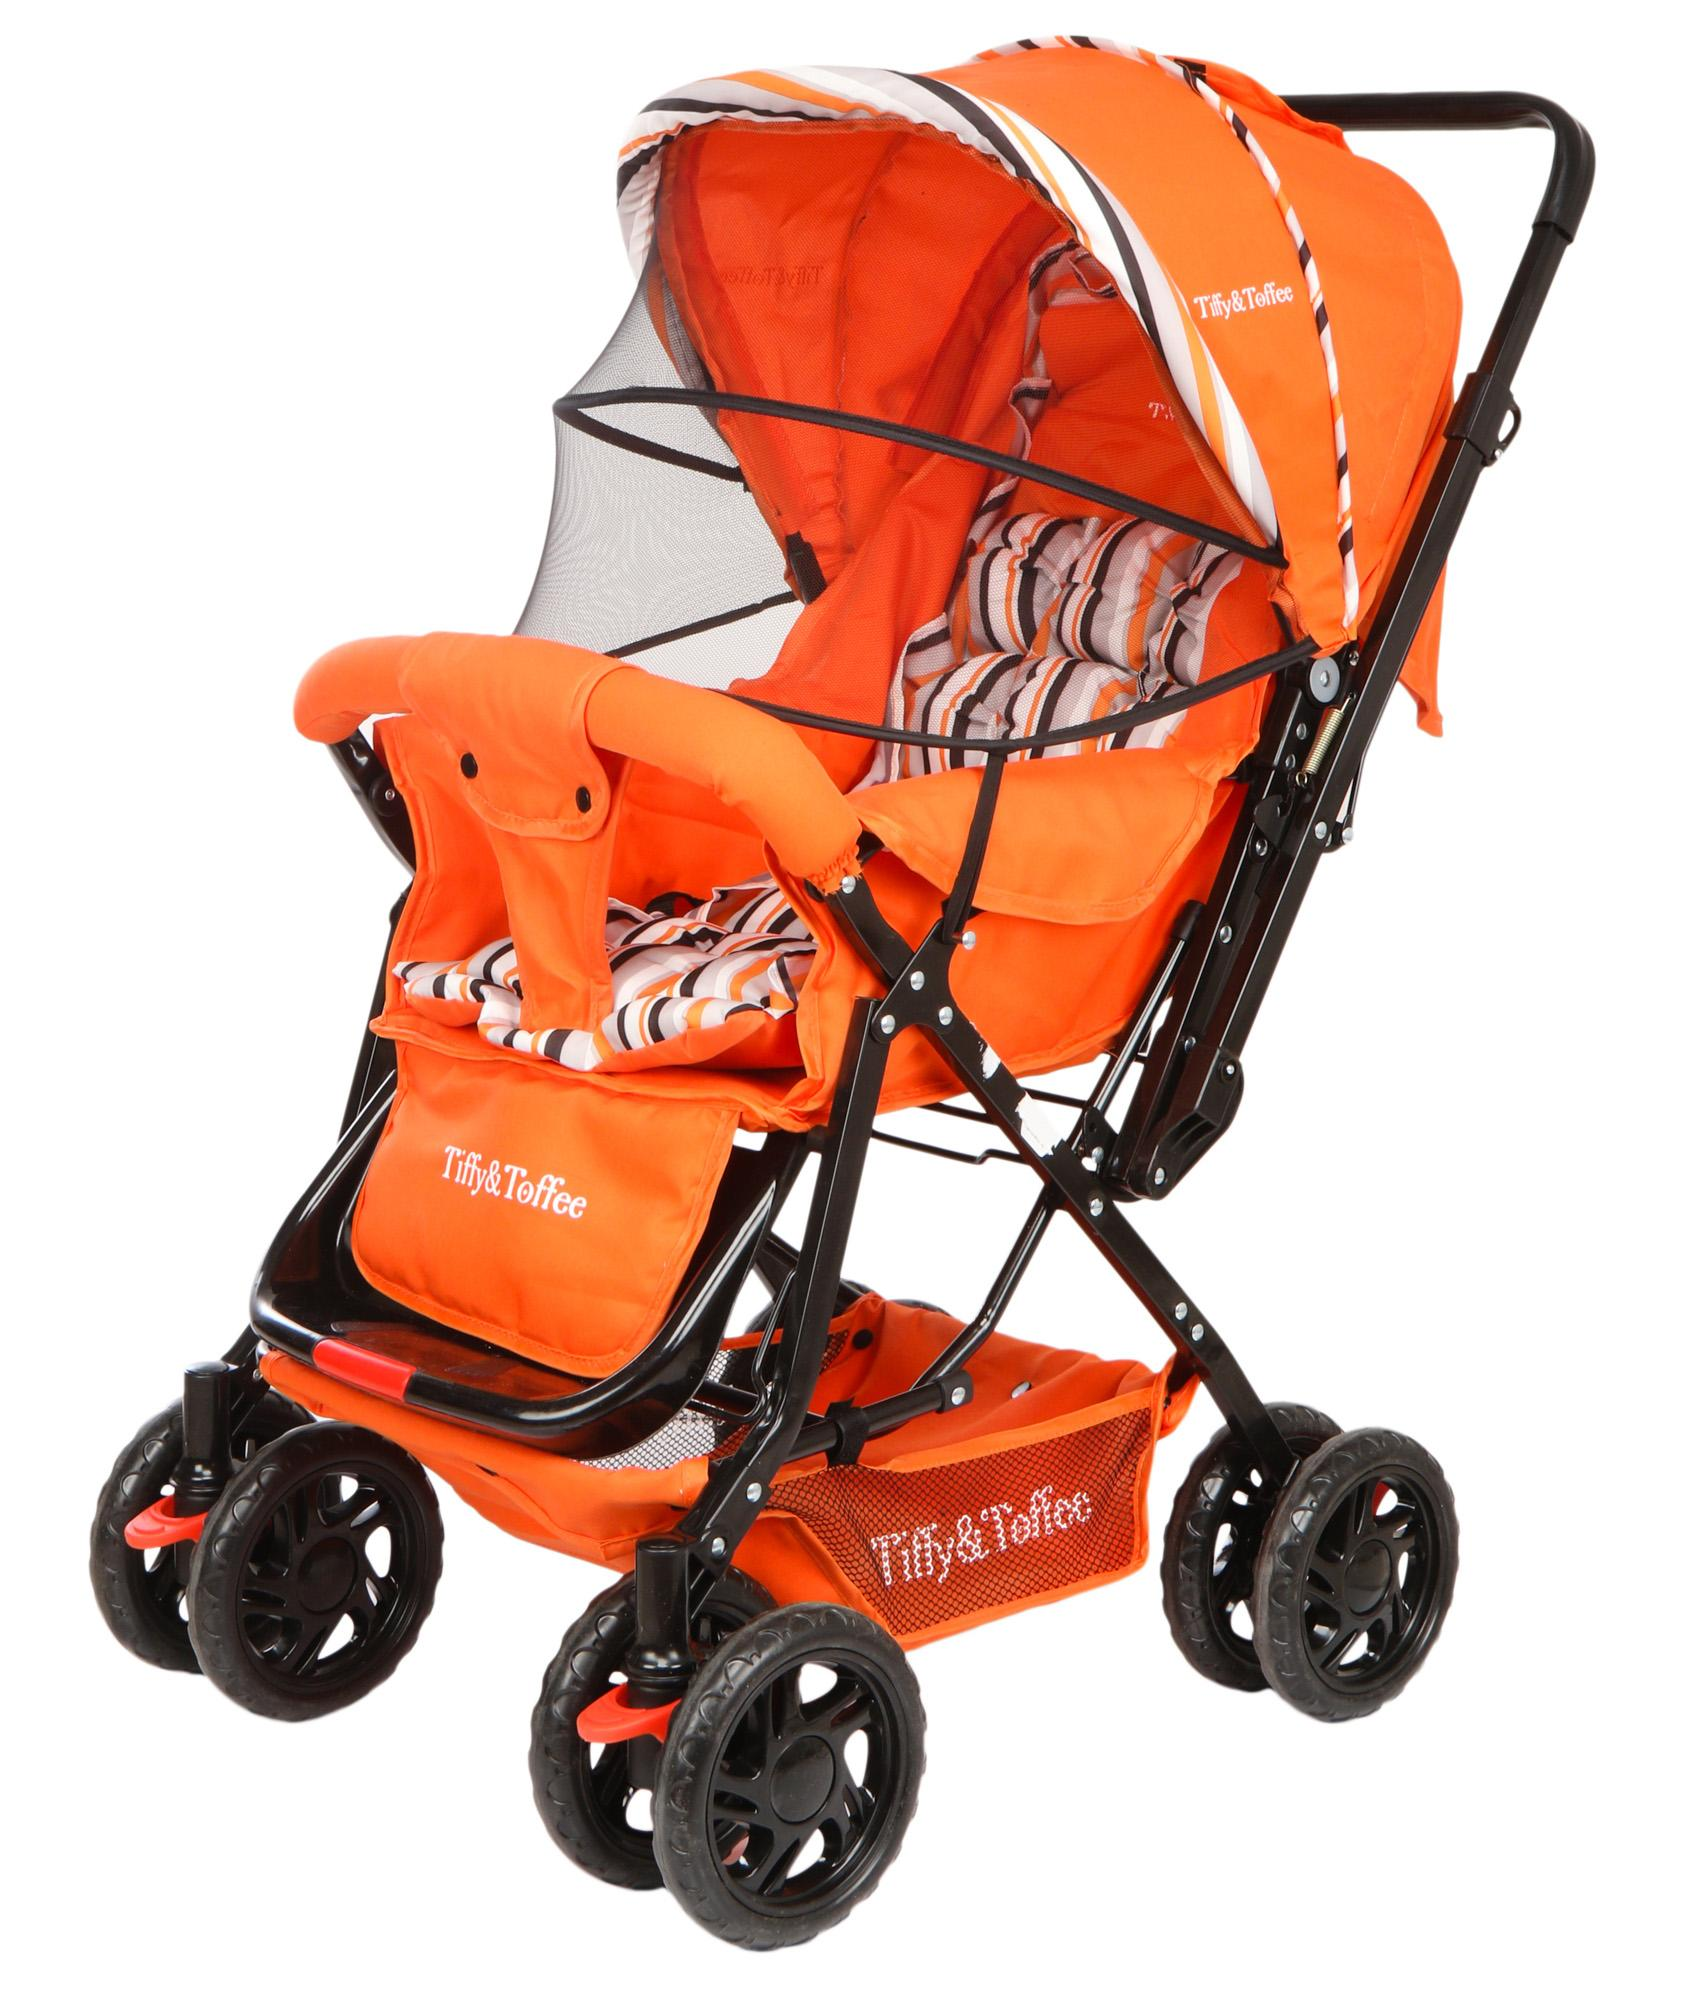 Toddler Stroller India Ral India Tiffy Toffee Child Care Strollers